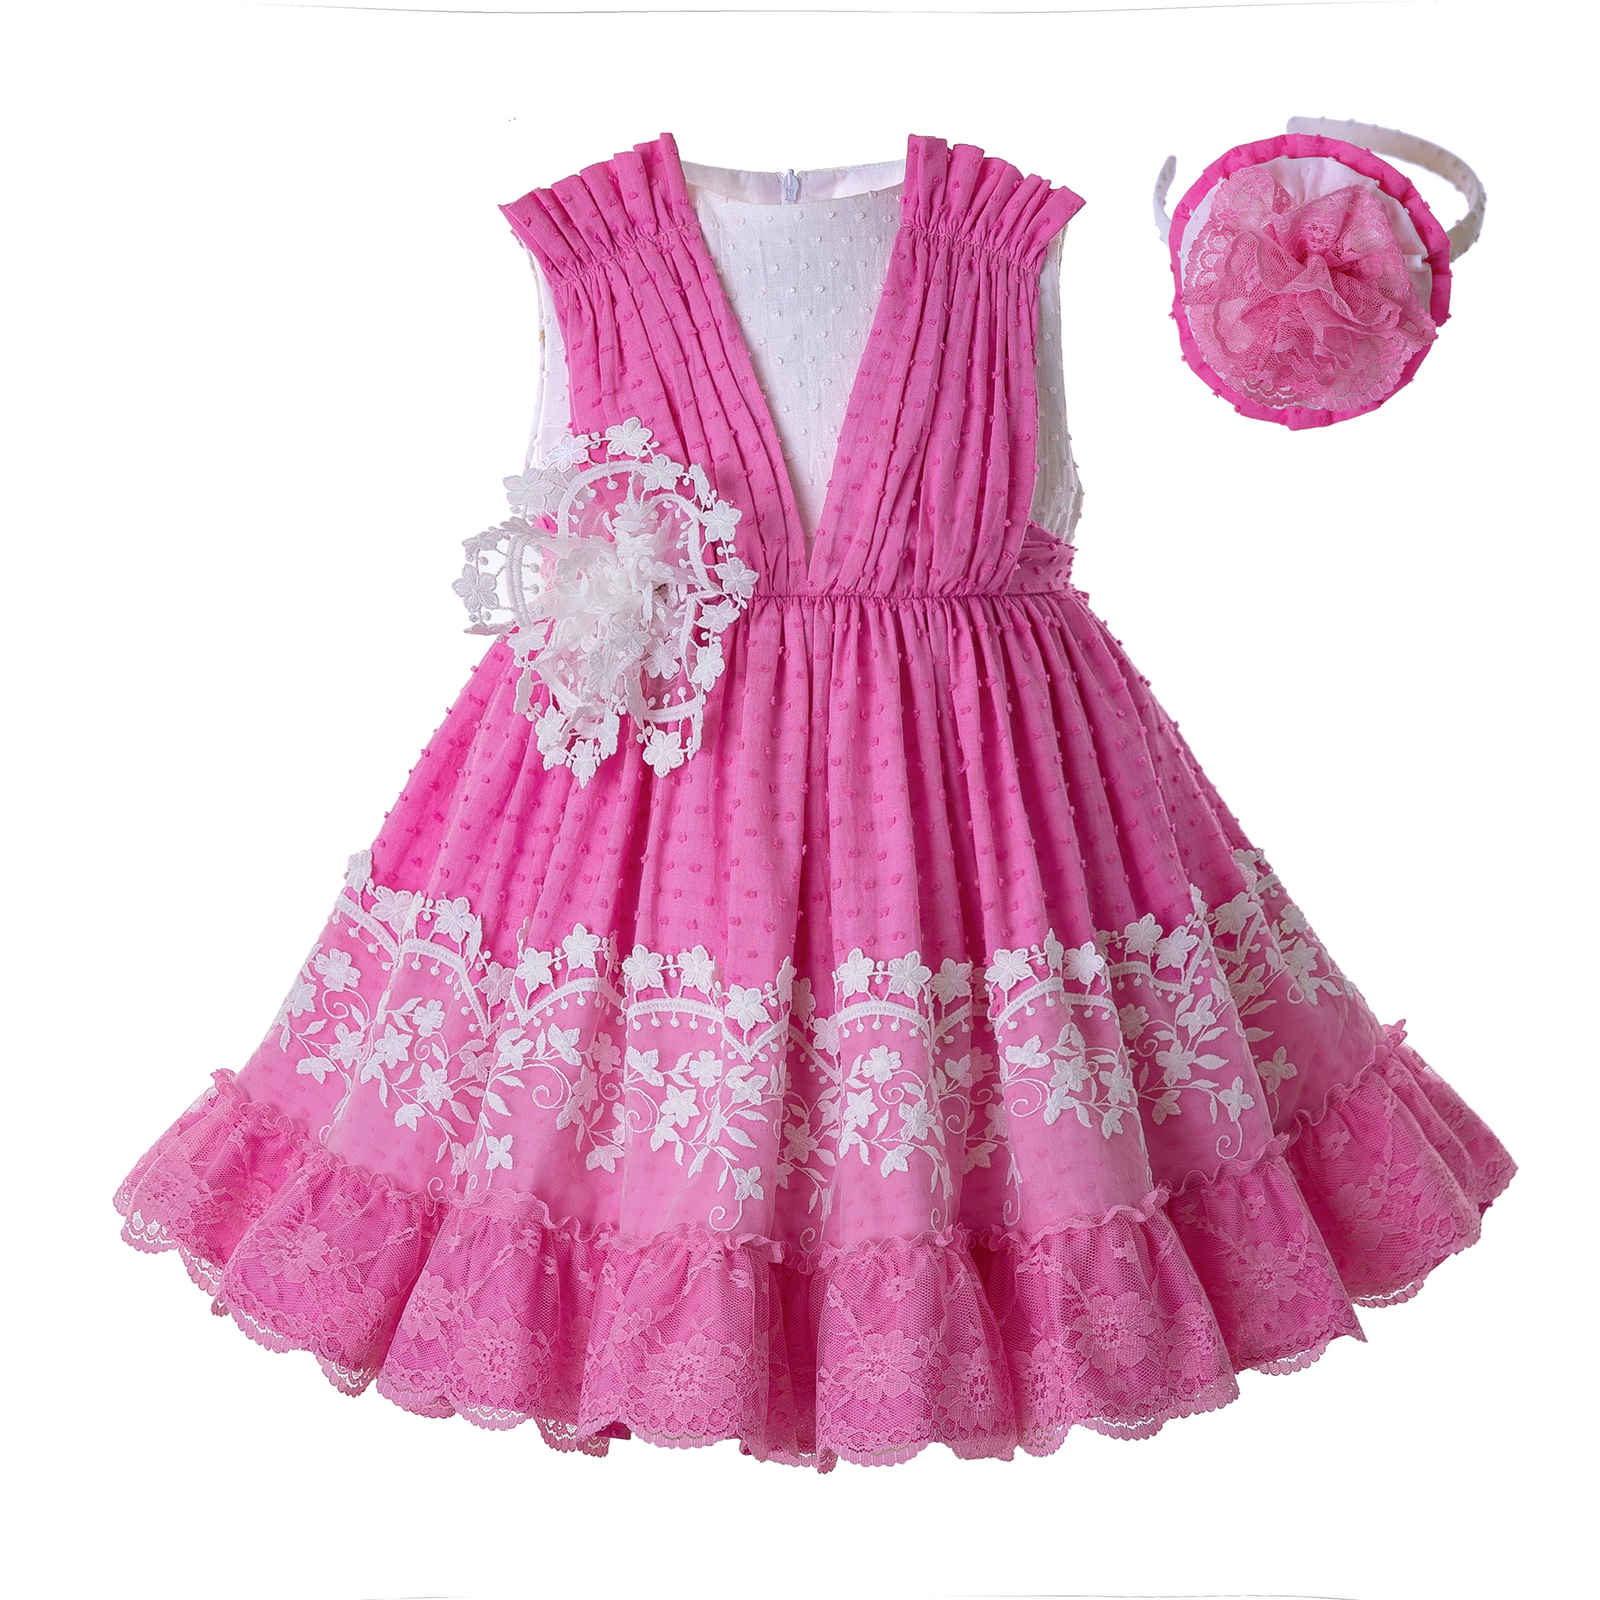 Spanish Kids Girls Floral Pleated Dress Boutique Party Pageant Prom Summer 2-8 Y